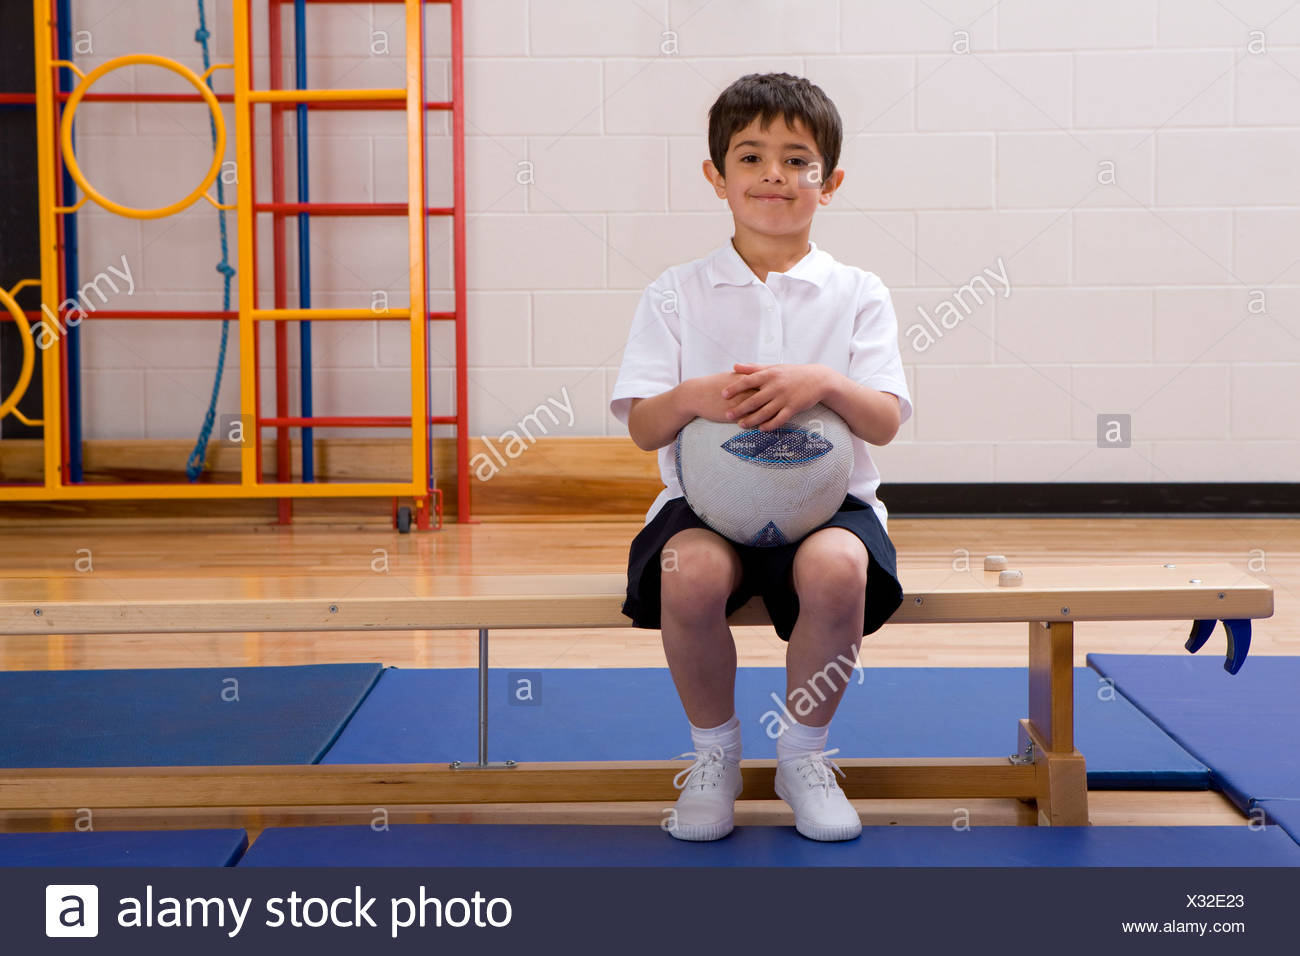 School boy sitting on bench and holding ball in school gymnasium - Stock Image